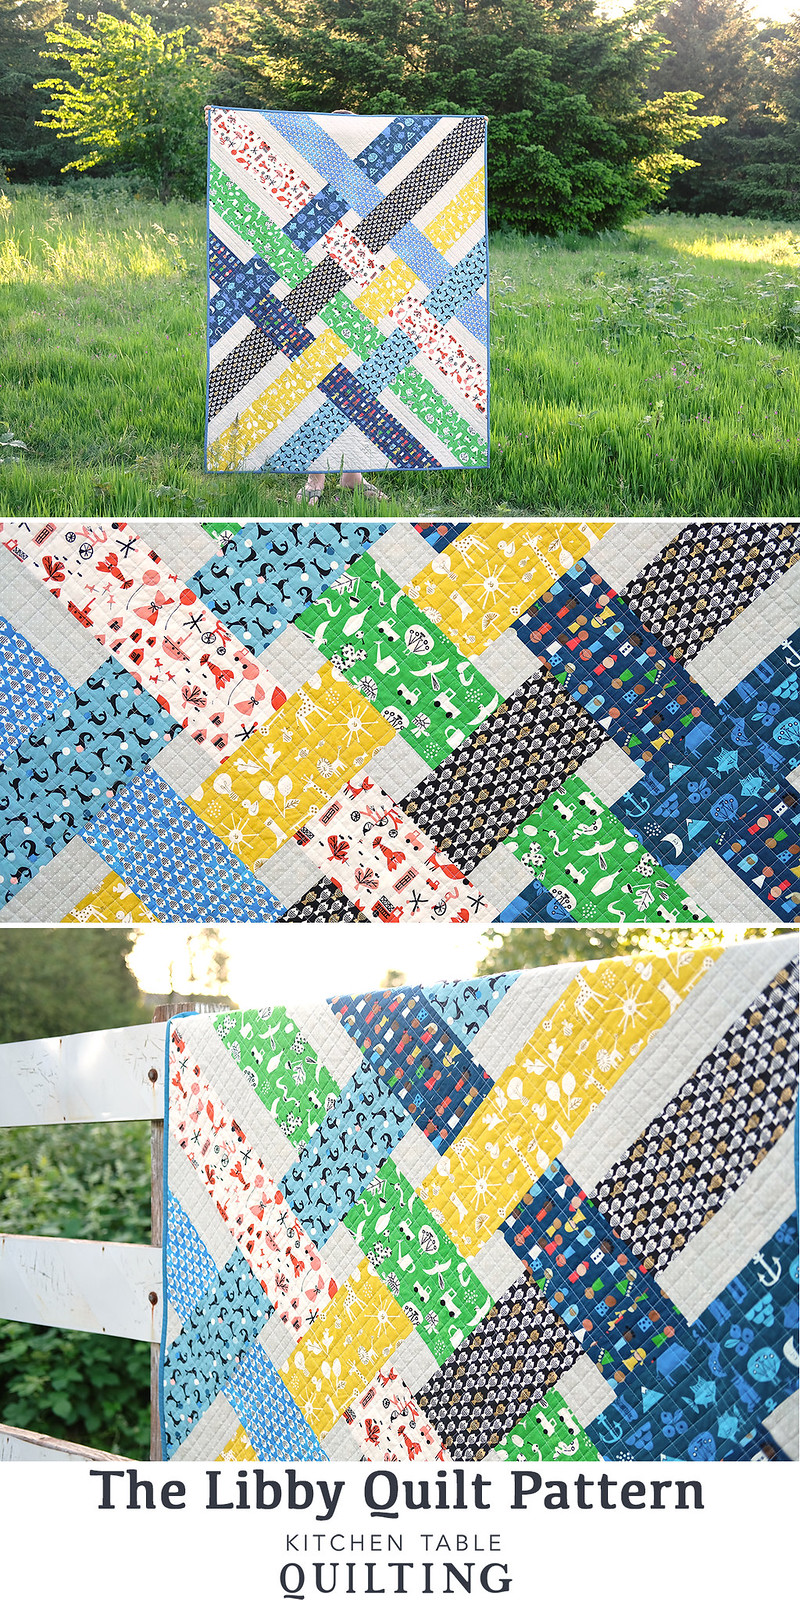 The Libby Quilt Pattern - Kitchen Table Quilting